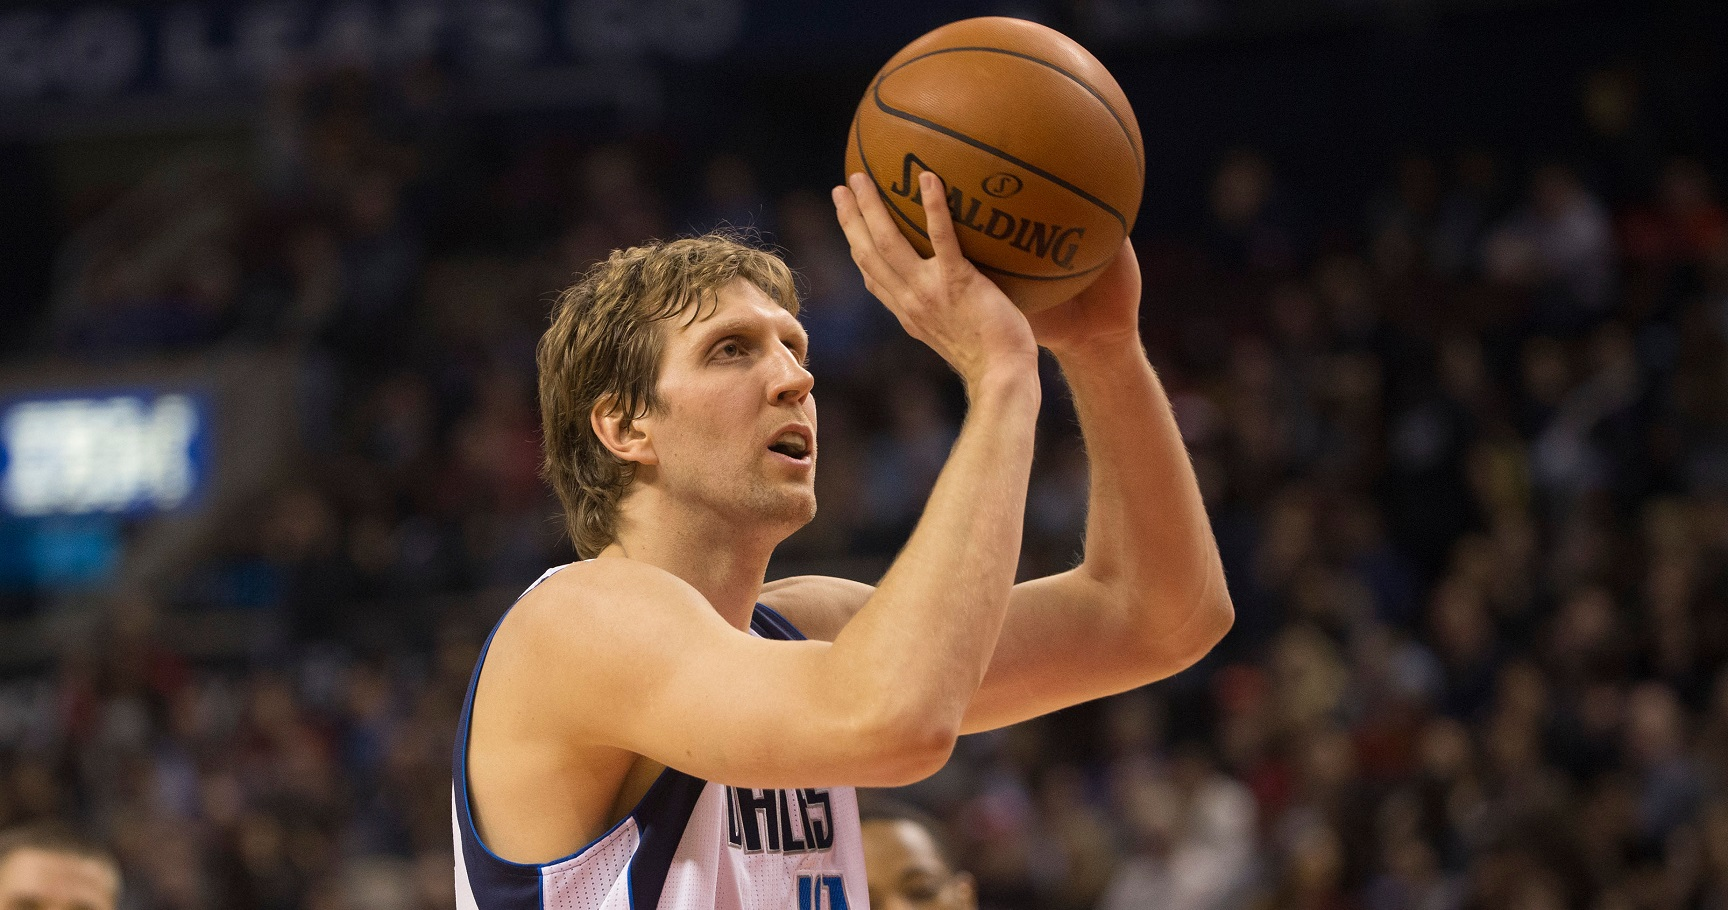 Basketball Players: Top 20 European Players In The NBA